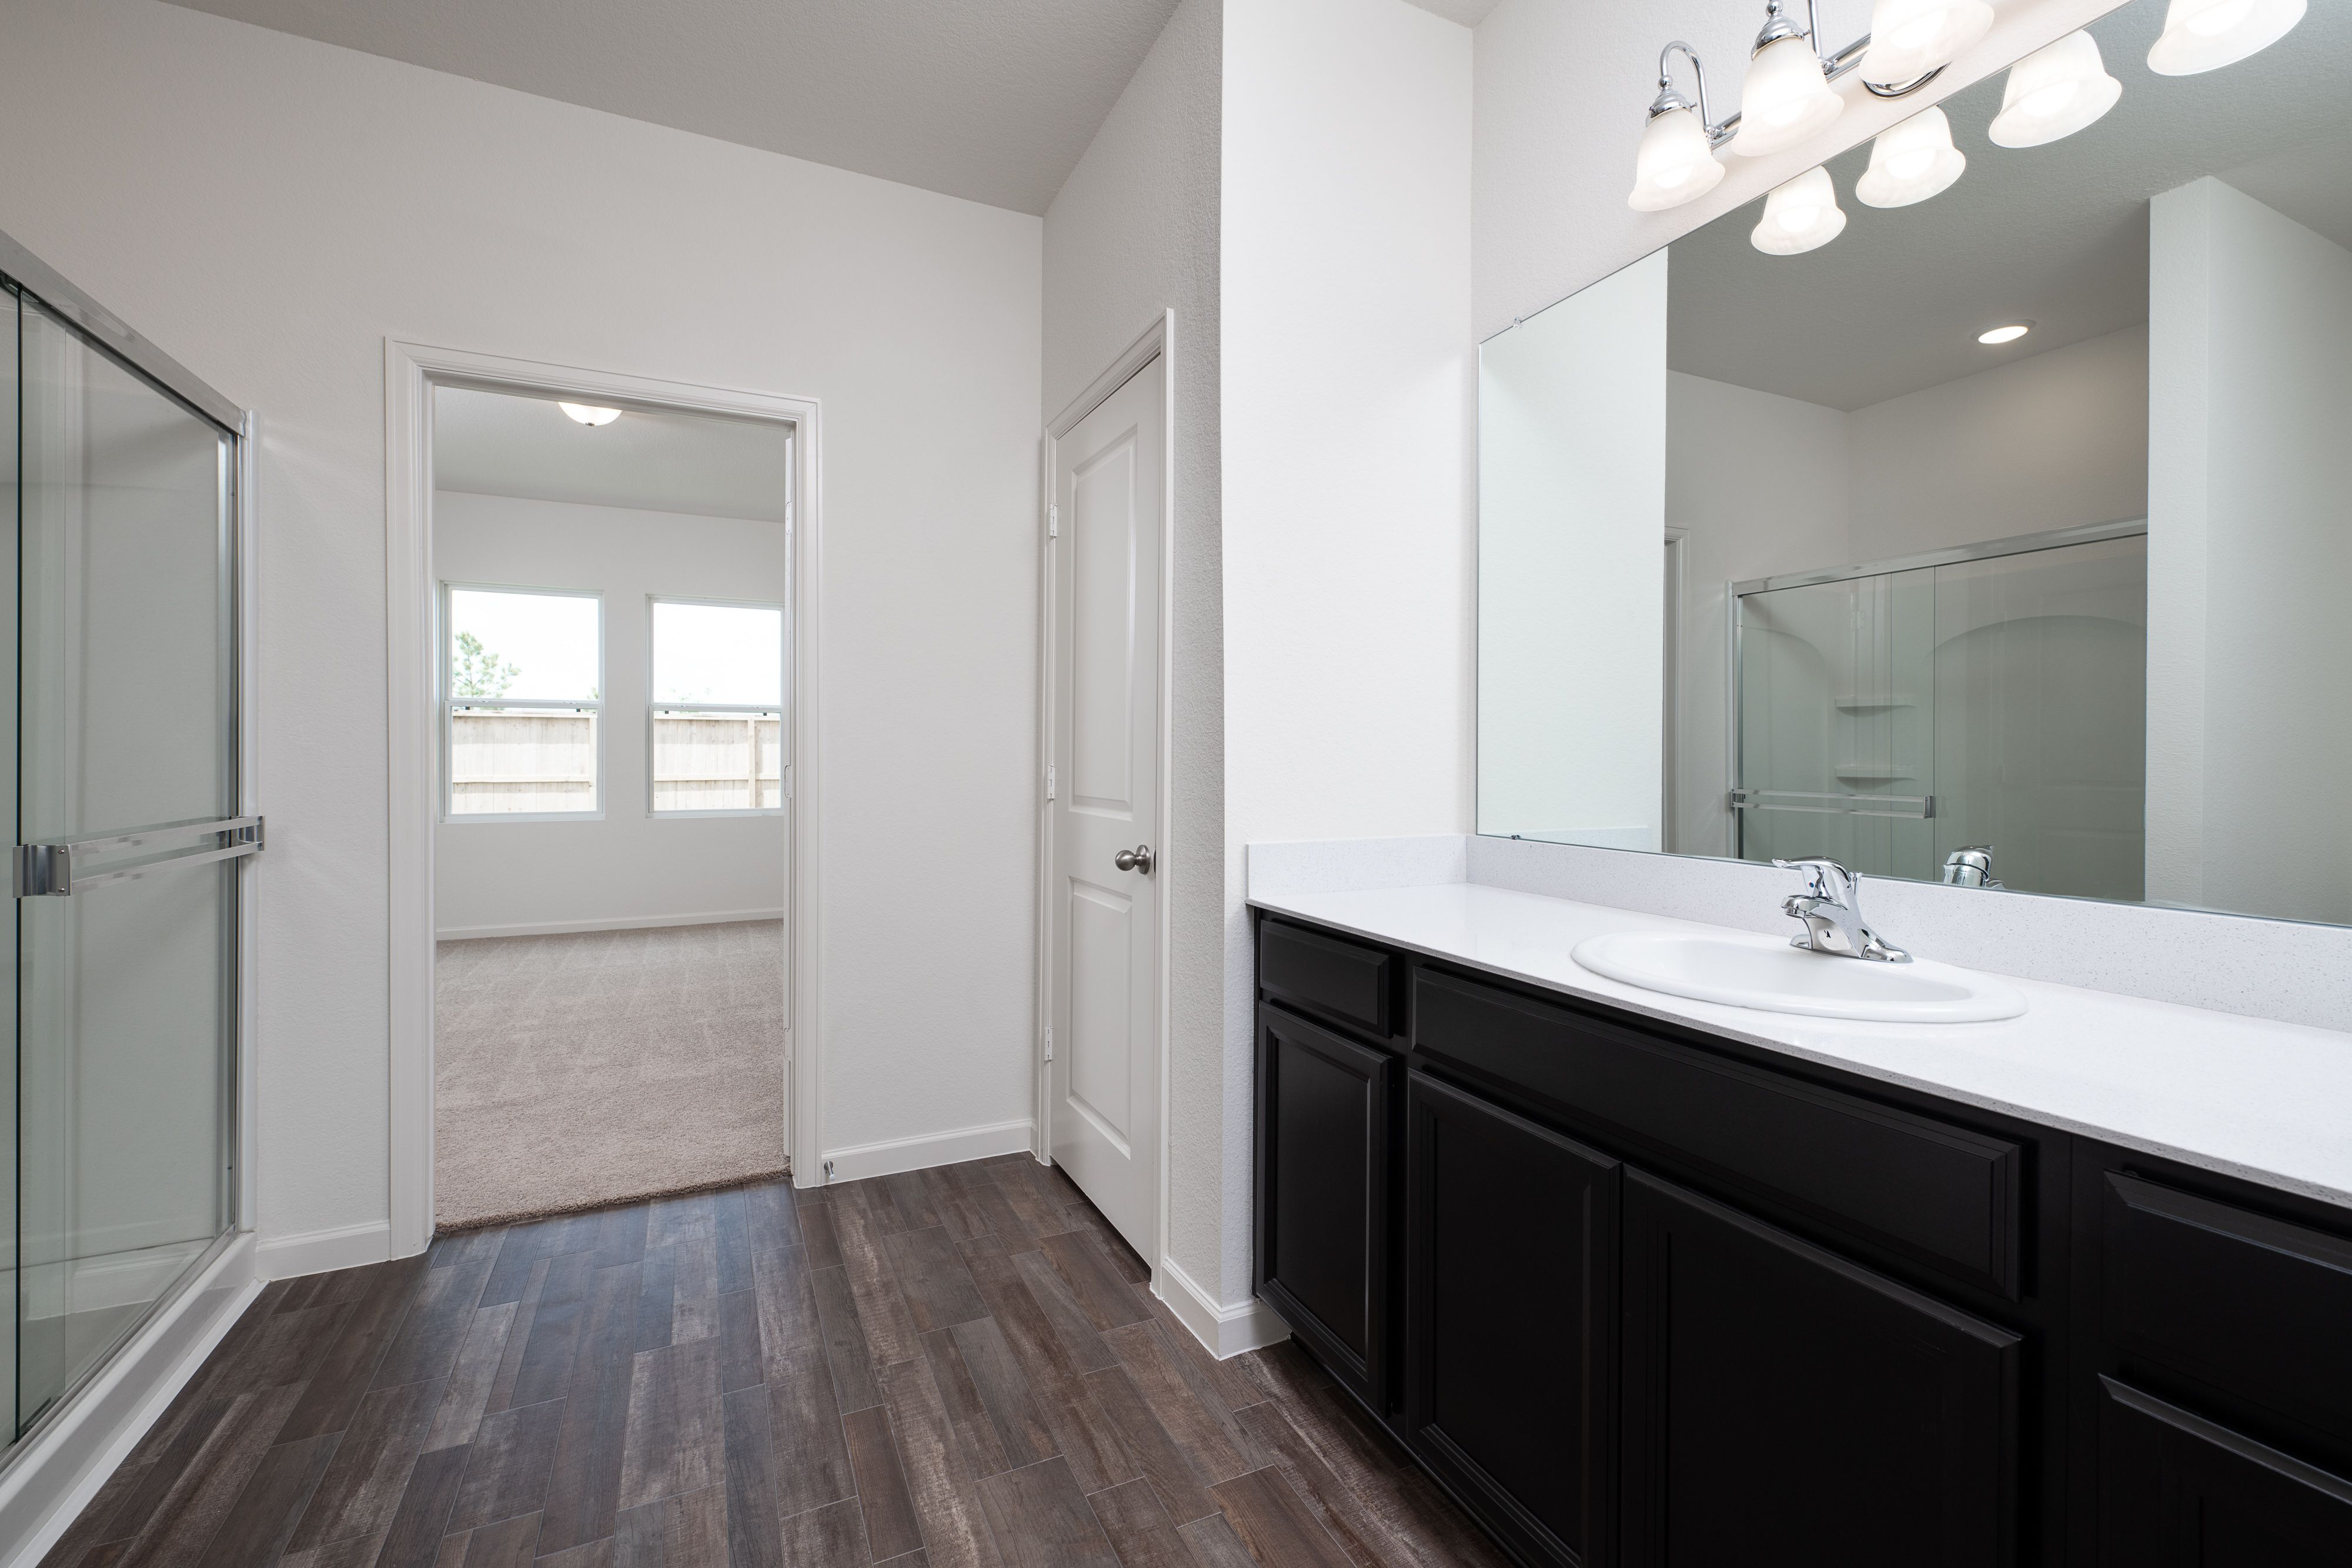 Bathroom featured in the Luna By Starlight Homes in Daytona Beach, FL